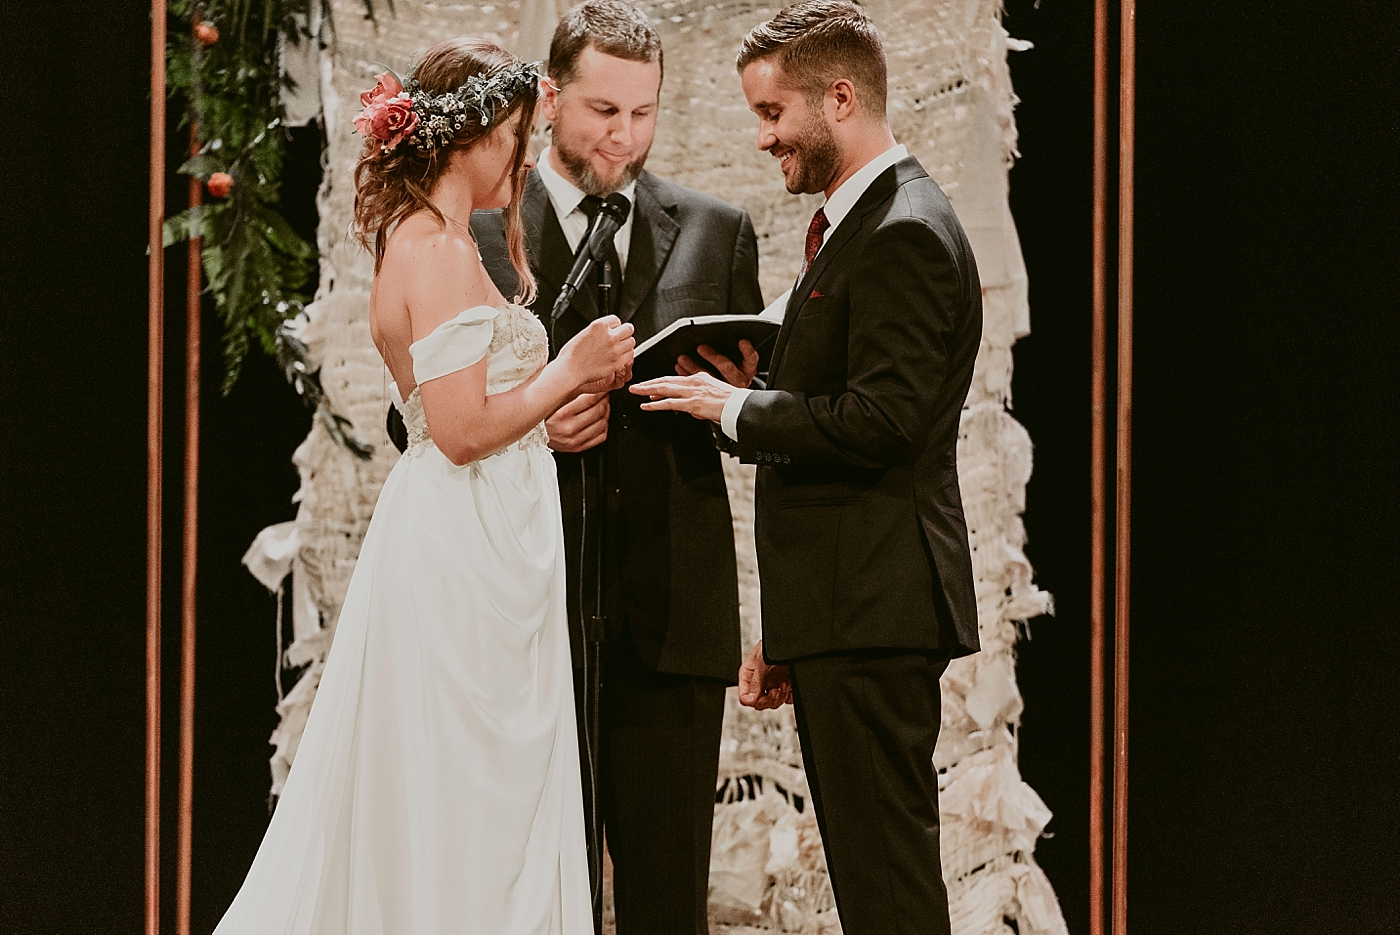 Woodland-Theater-Wedding-Molly+Ryan_MJPHOTO-436.jpg